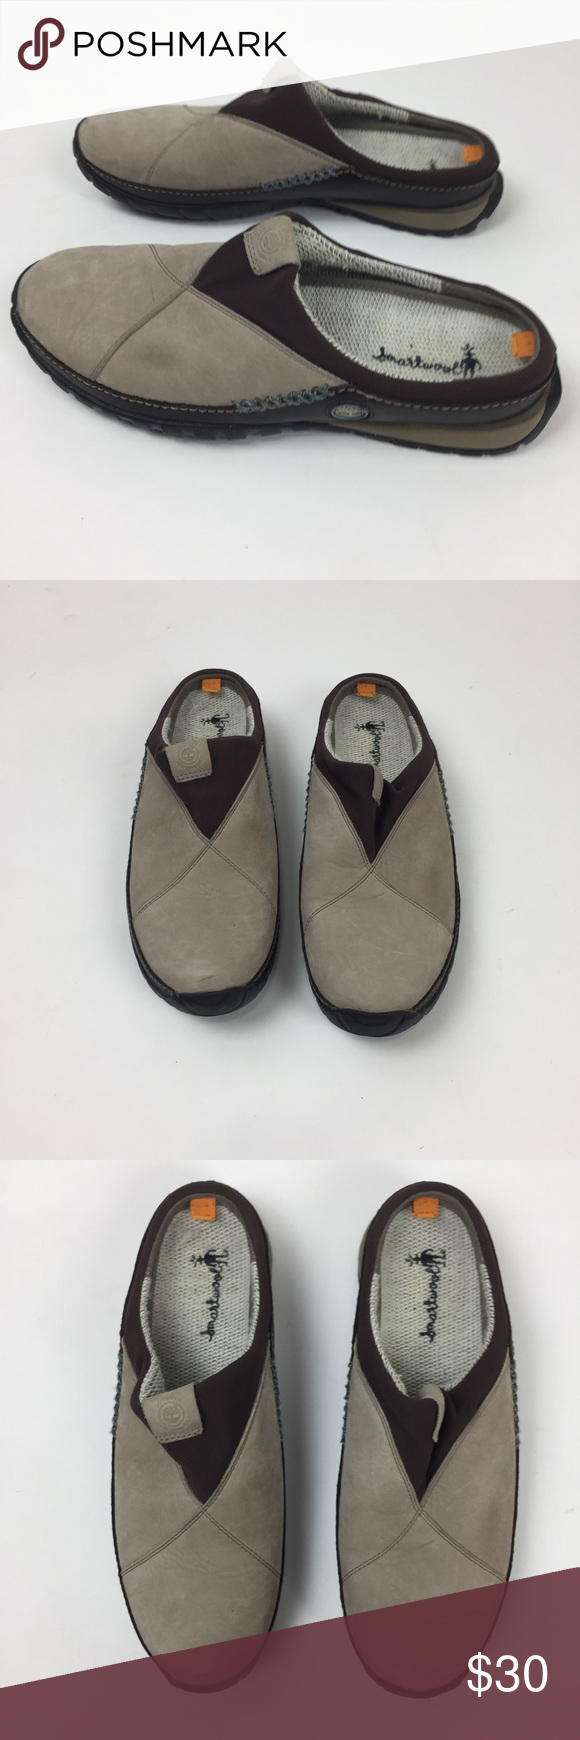 c120ceaf3cd Timberland Nubuck smartwool Power Lounger Clogs Great condition. See photos  Timberland Shoes Mules & Clogs